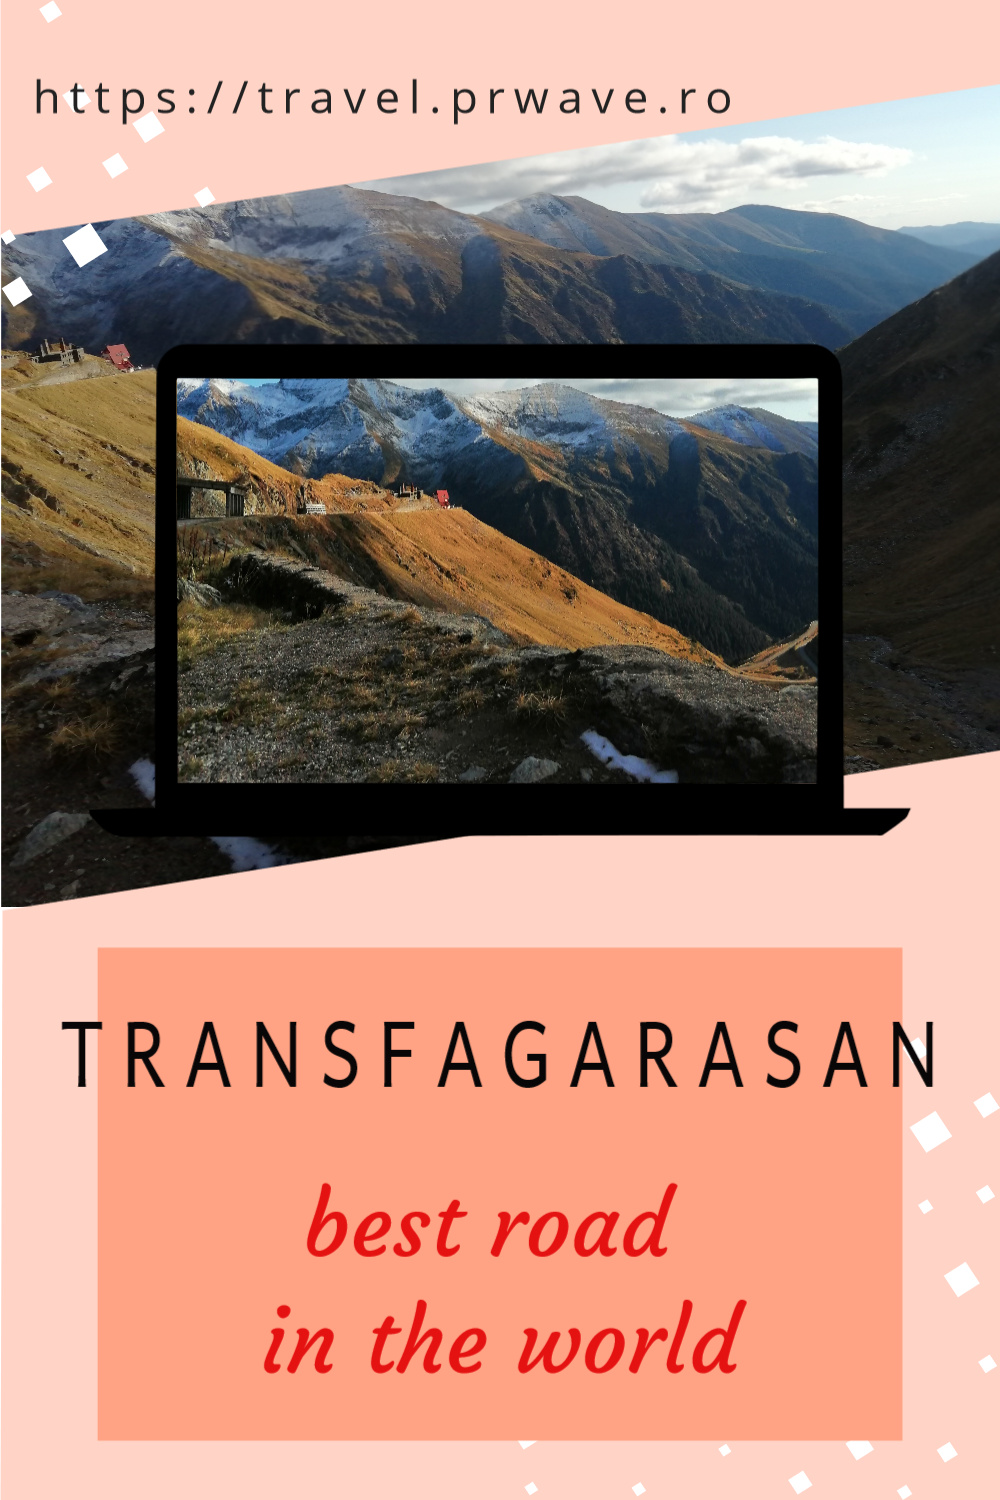 Transfagarasan: best road in the world! Discover how to plan the perfect Transfagarasan trip, the best Transfagarasan stops, useful Transfagarasan tips from this Transfagarasan travel guide by a local. Read the article now! #transfagarasan #transfagarasanroad #transfagarasanhighway #transfagarasanromania #romania #romaniatravel #europe #roadtrip #romaniaroadtrip #travelmomentsintime #visitromania